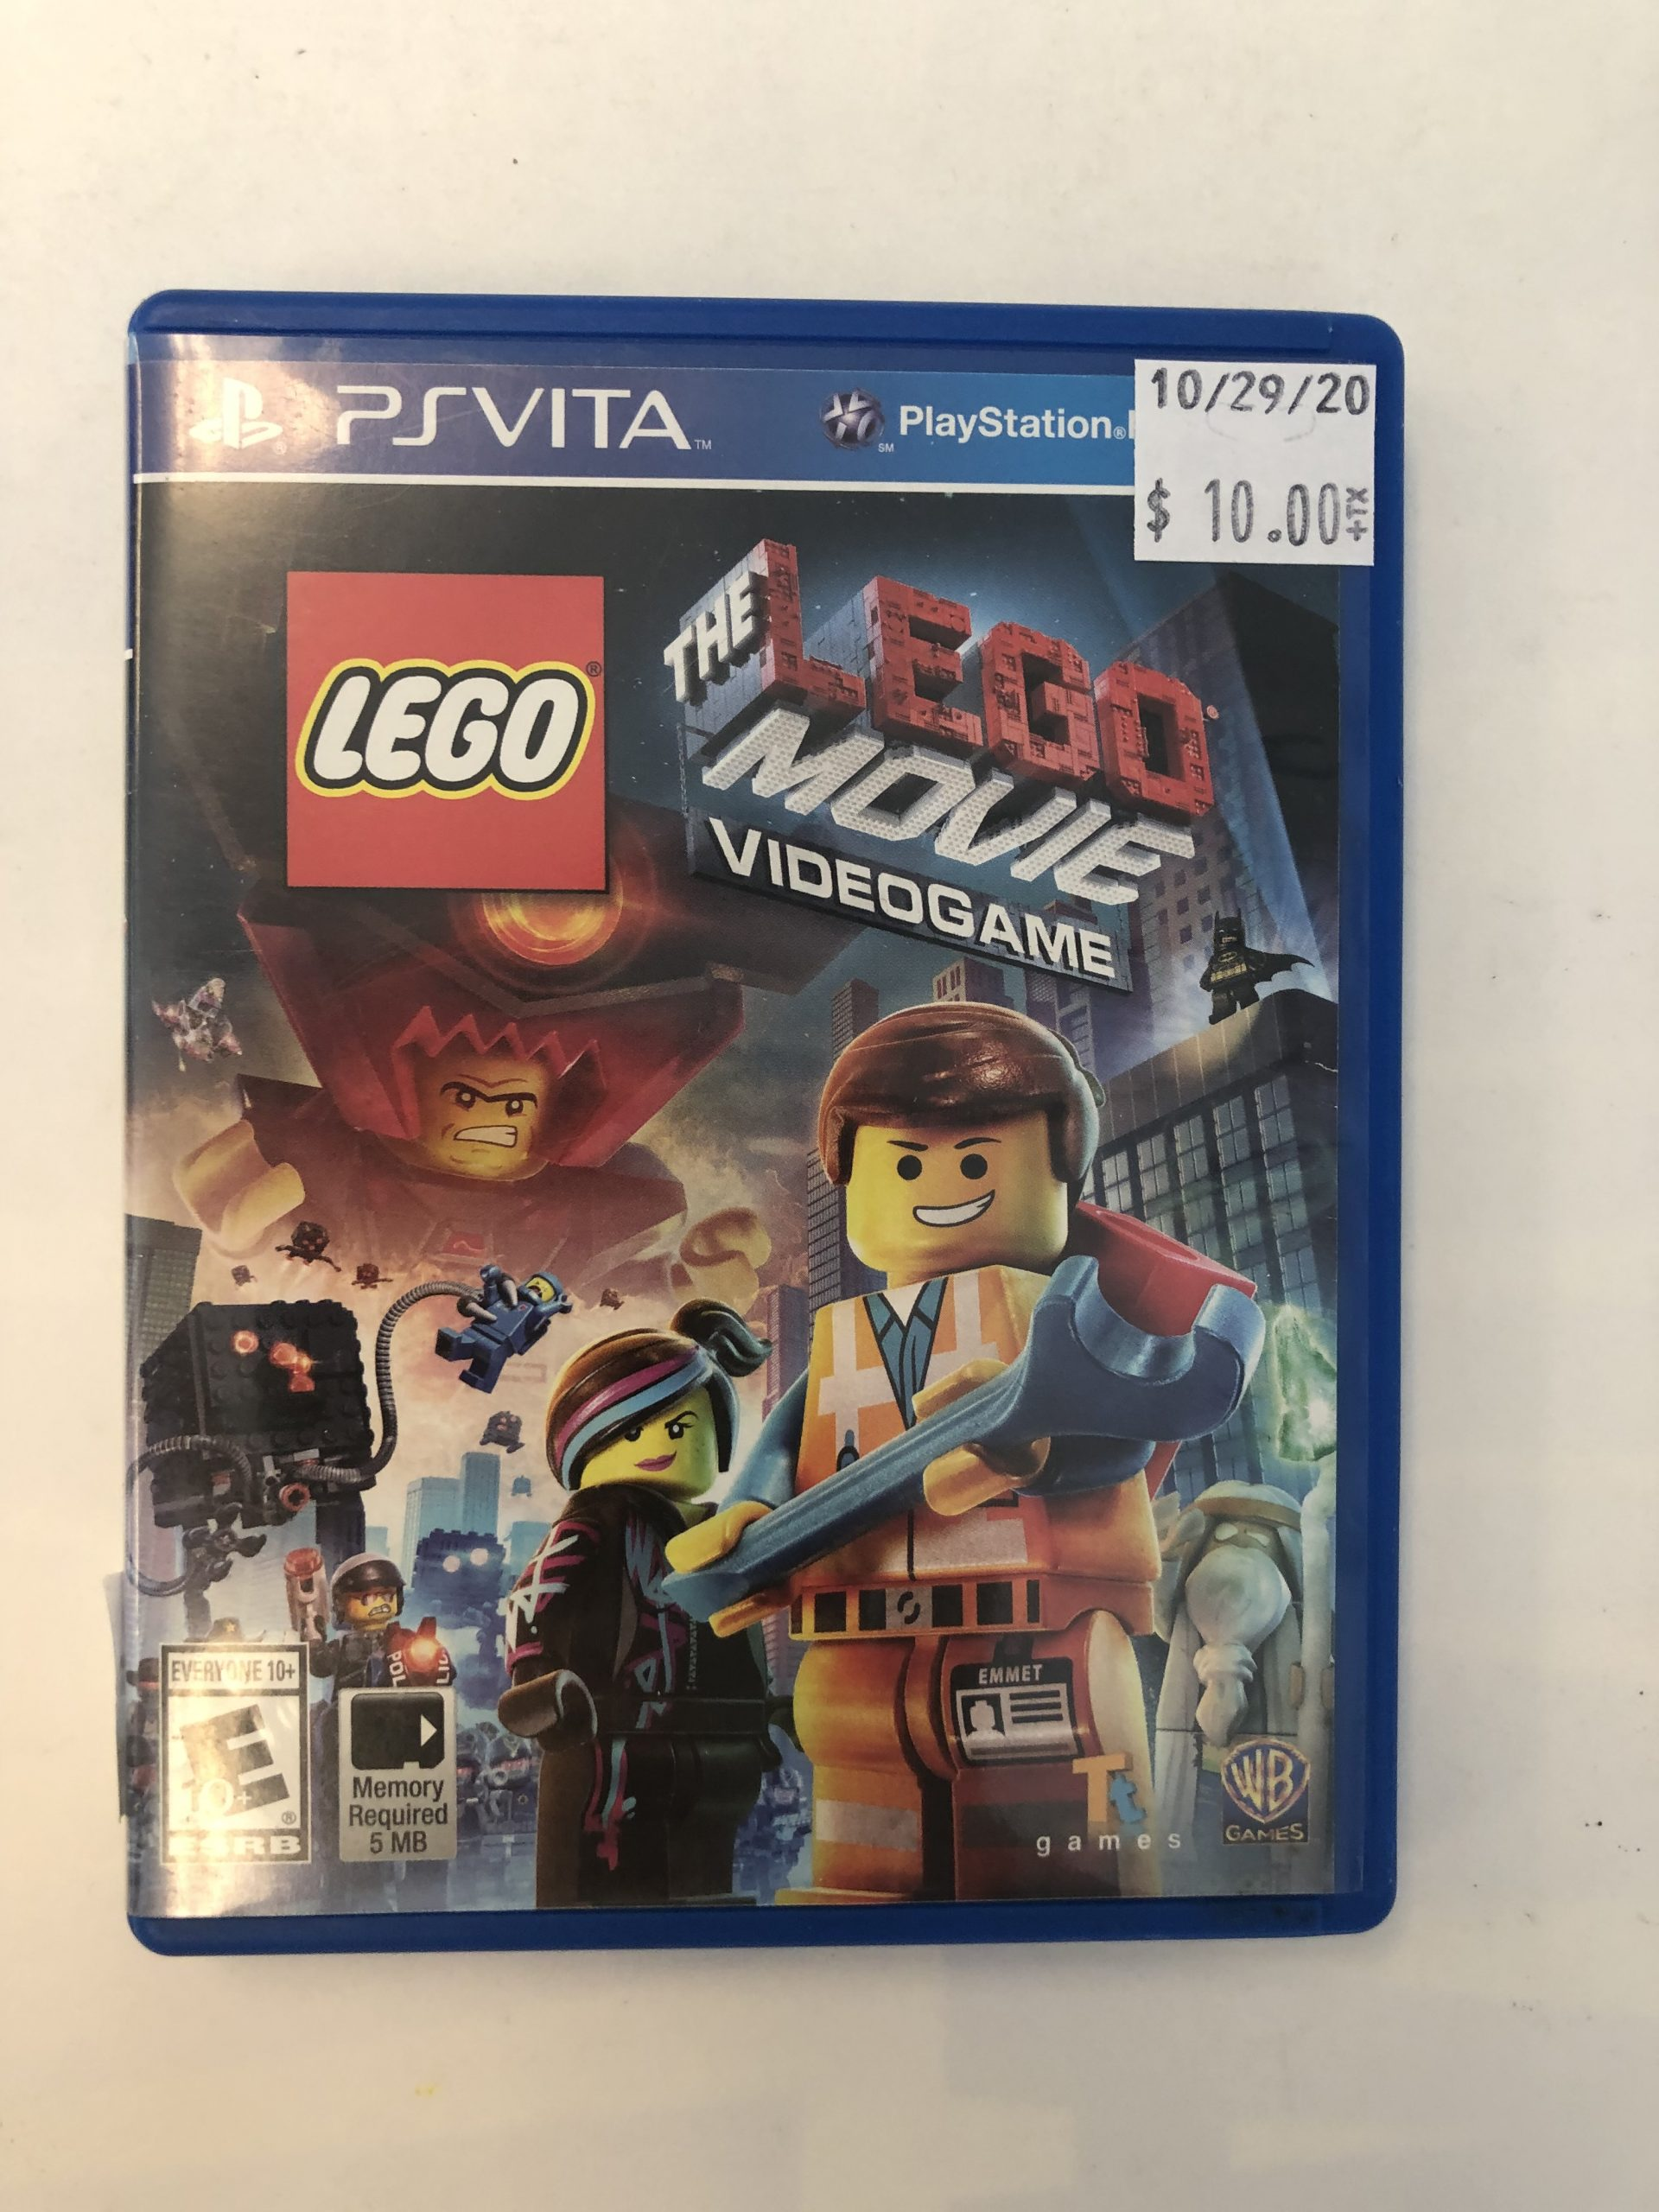 The Lego Videogame CIB PS Vita